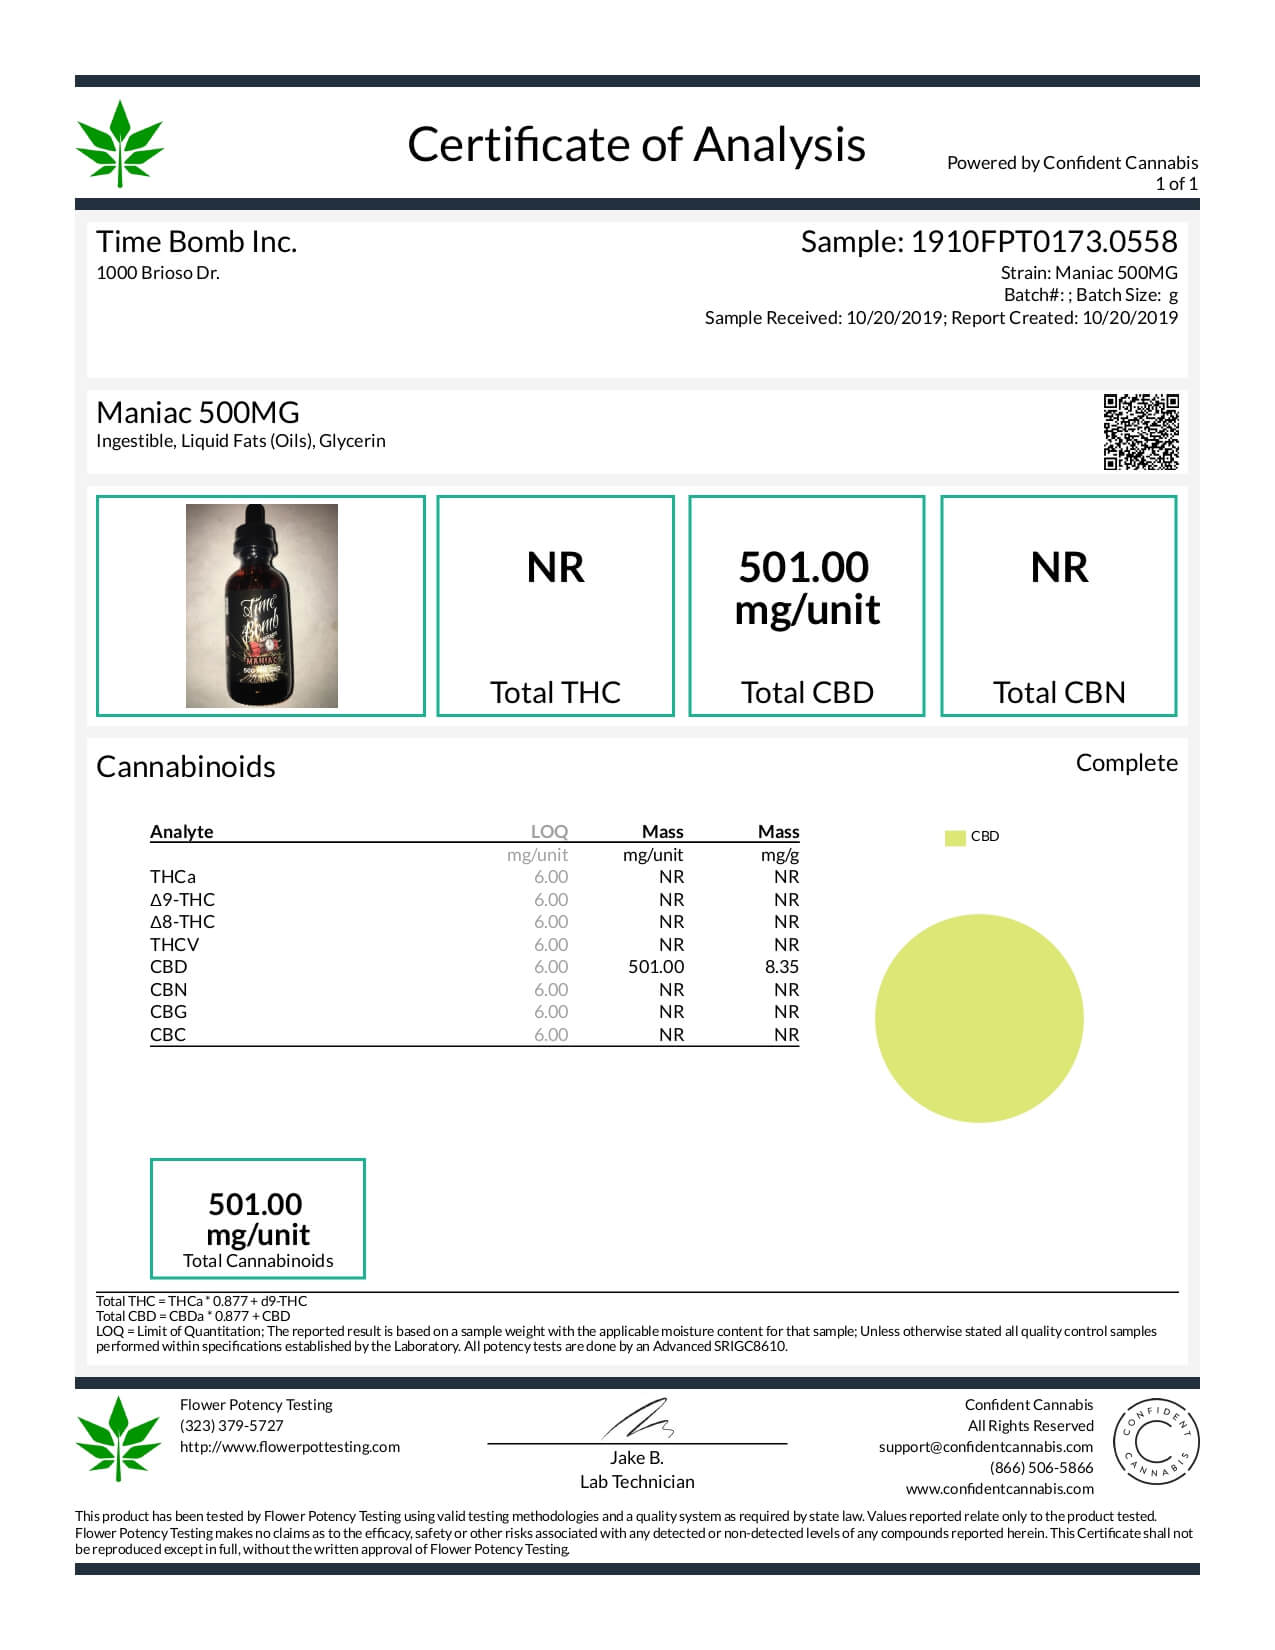 Time Bomb Extracts CBD Vape Juice Maniac 500mg Lab Report